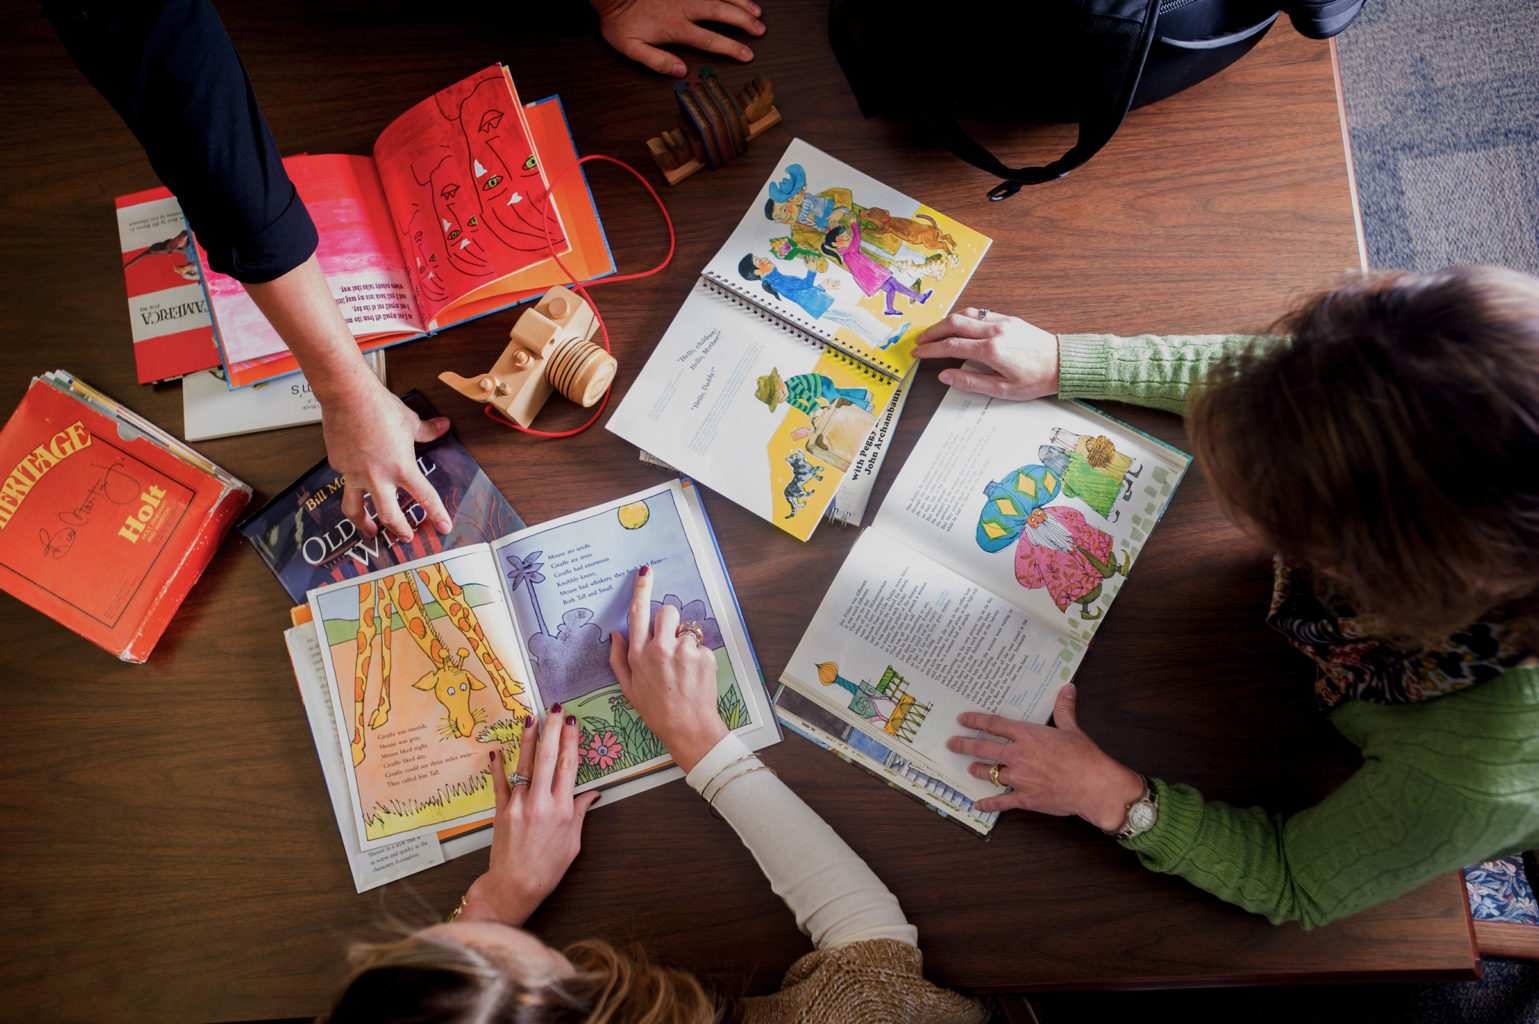 On top view of three people looking over children's book places on a desk.